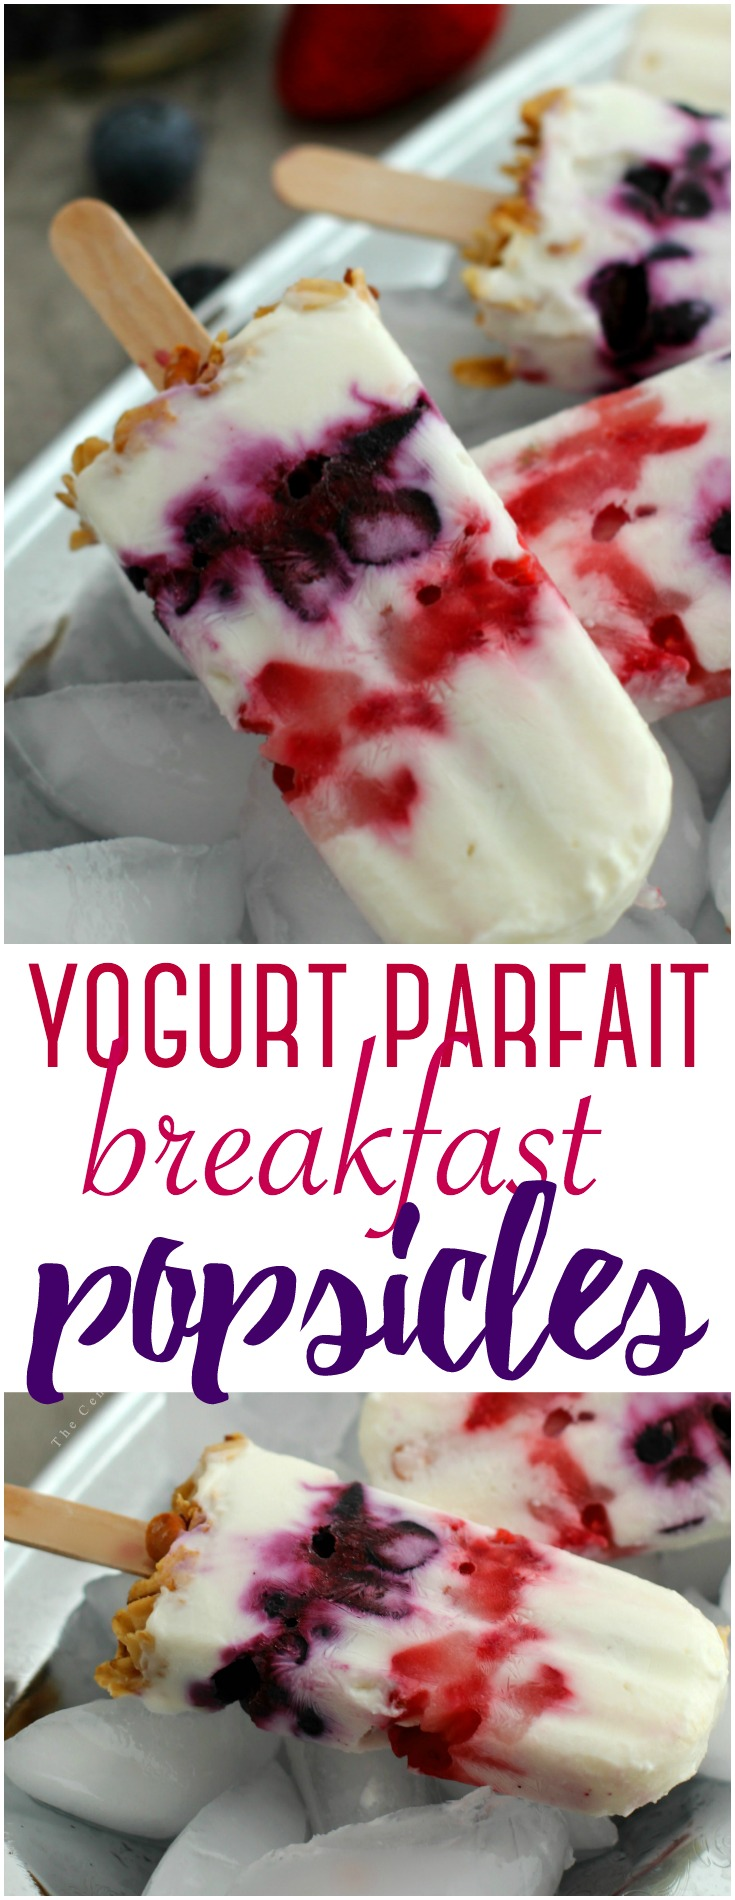 These delicious yogurt parfait breakfast popsicles make a great on the go breakfast for a busy morning - perfect for both kids and adults!